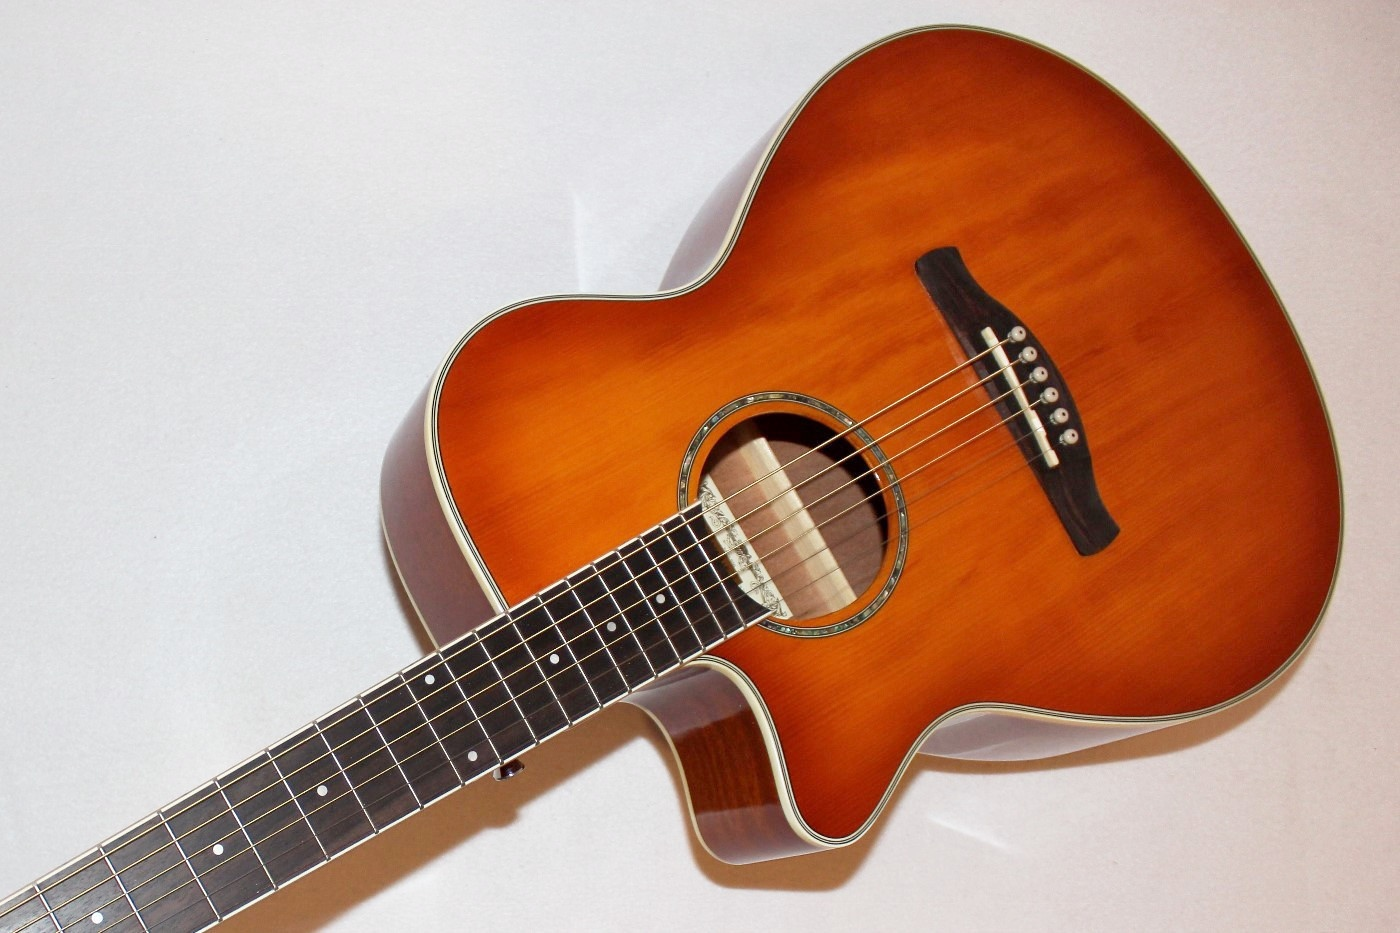 ibanez aeg18lii cutaway left handed acoustic electric guitar ebay. Black Bedroom Furniture Sets. Home Design Ideas